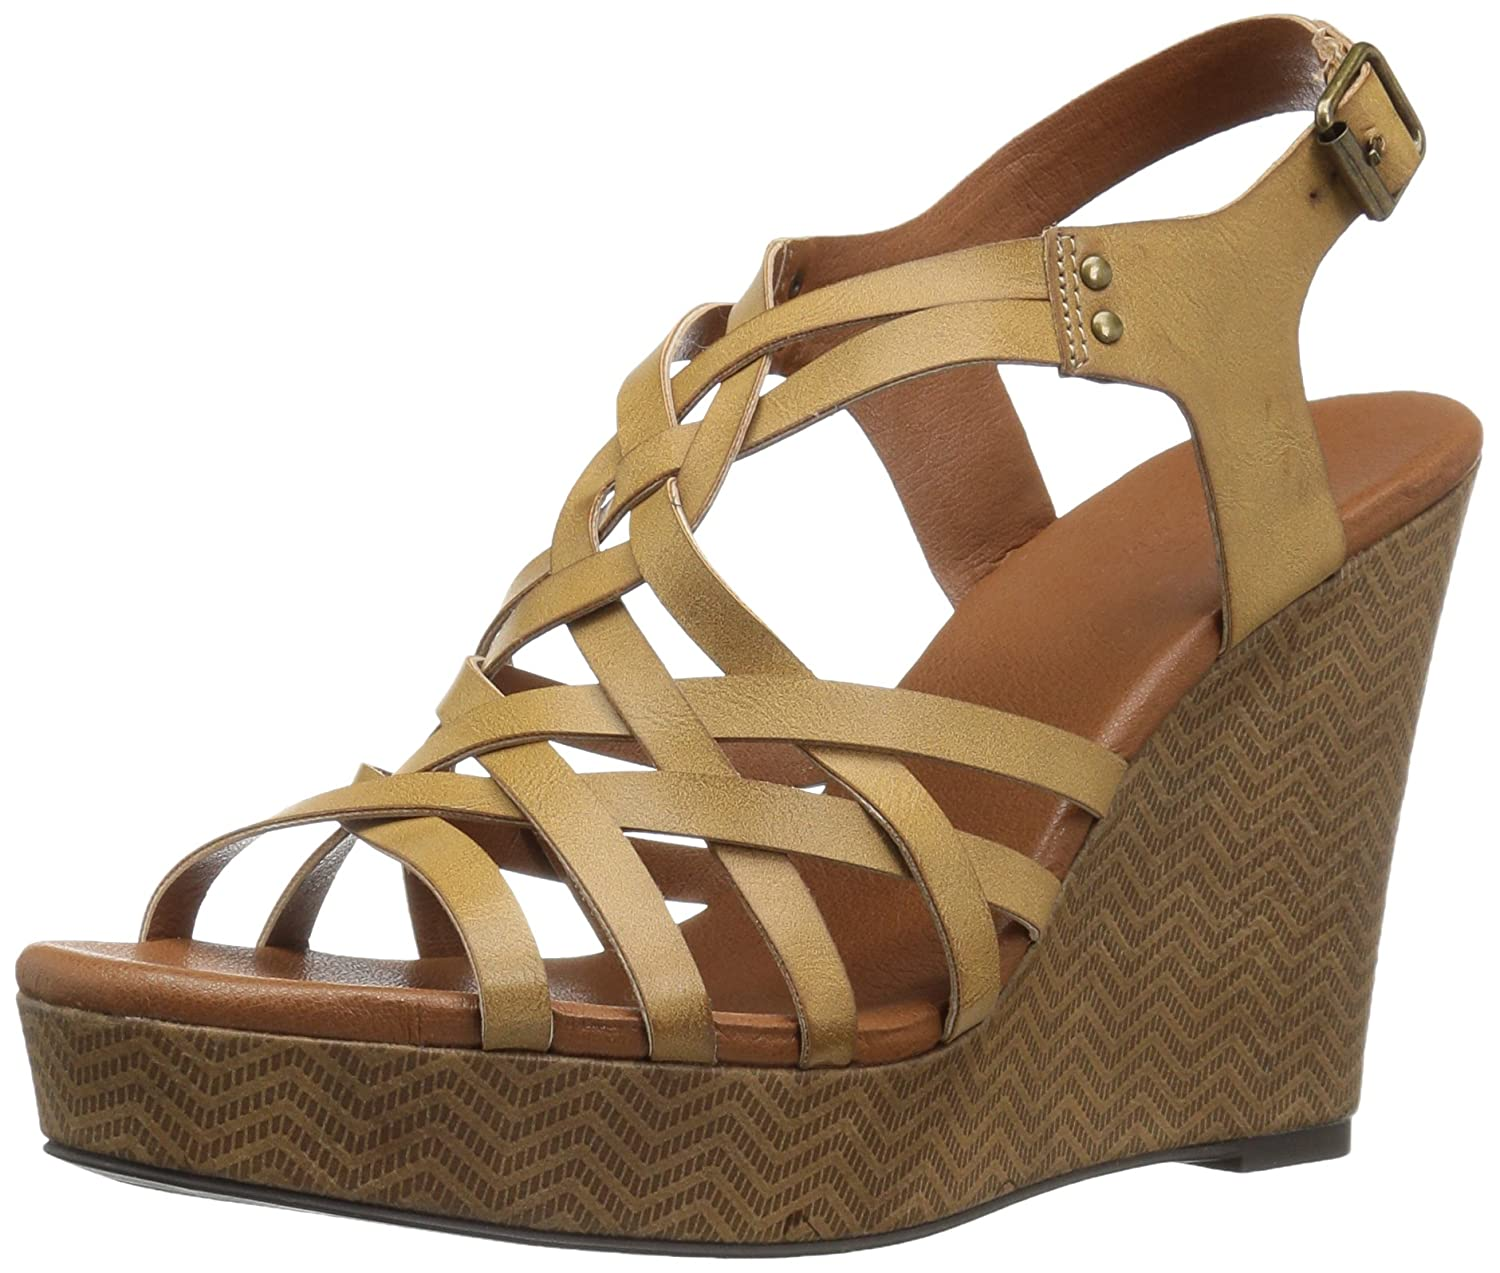 Dolce by Mojo Moxy Women's Safara Wedge Sandal B06XHBLJXT 8.5 UK/US Size Conversion M US|Cognac